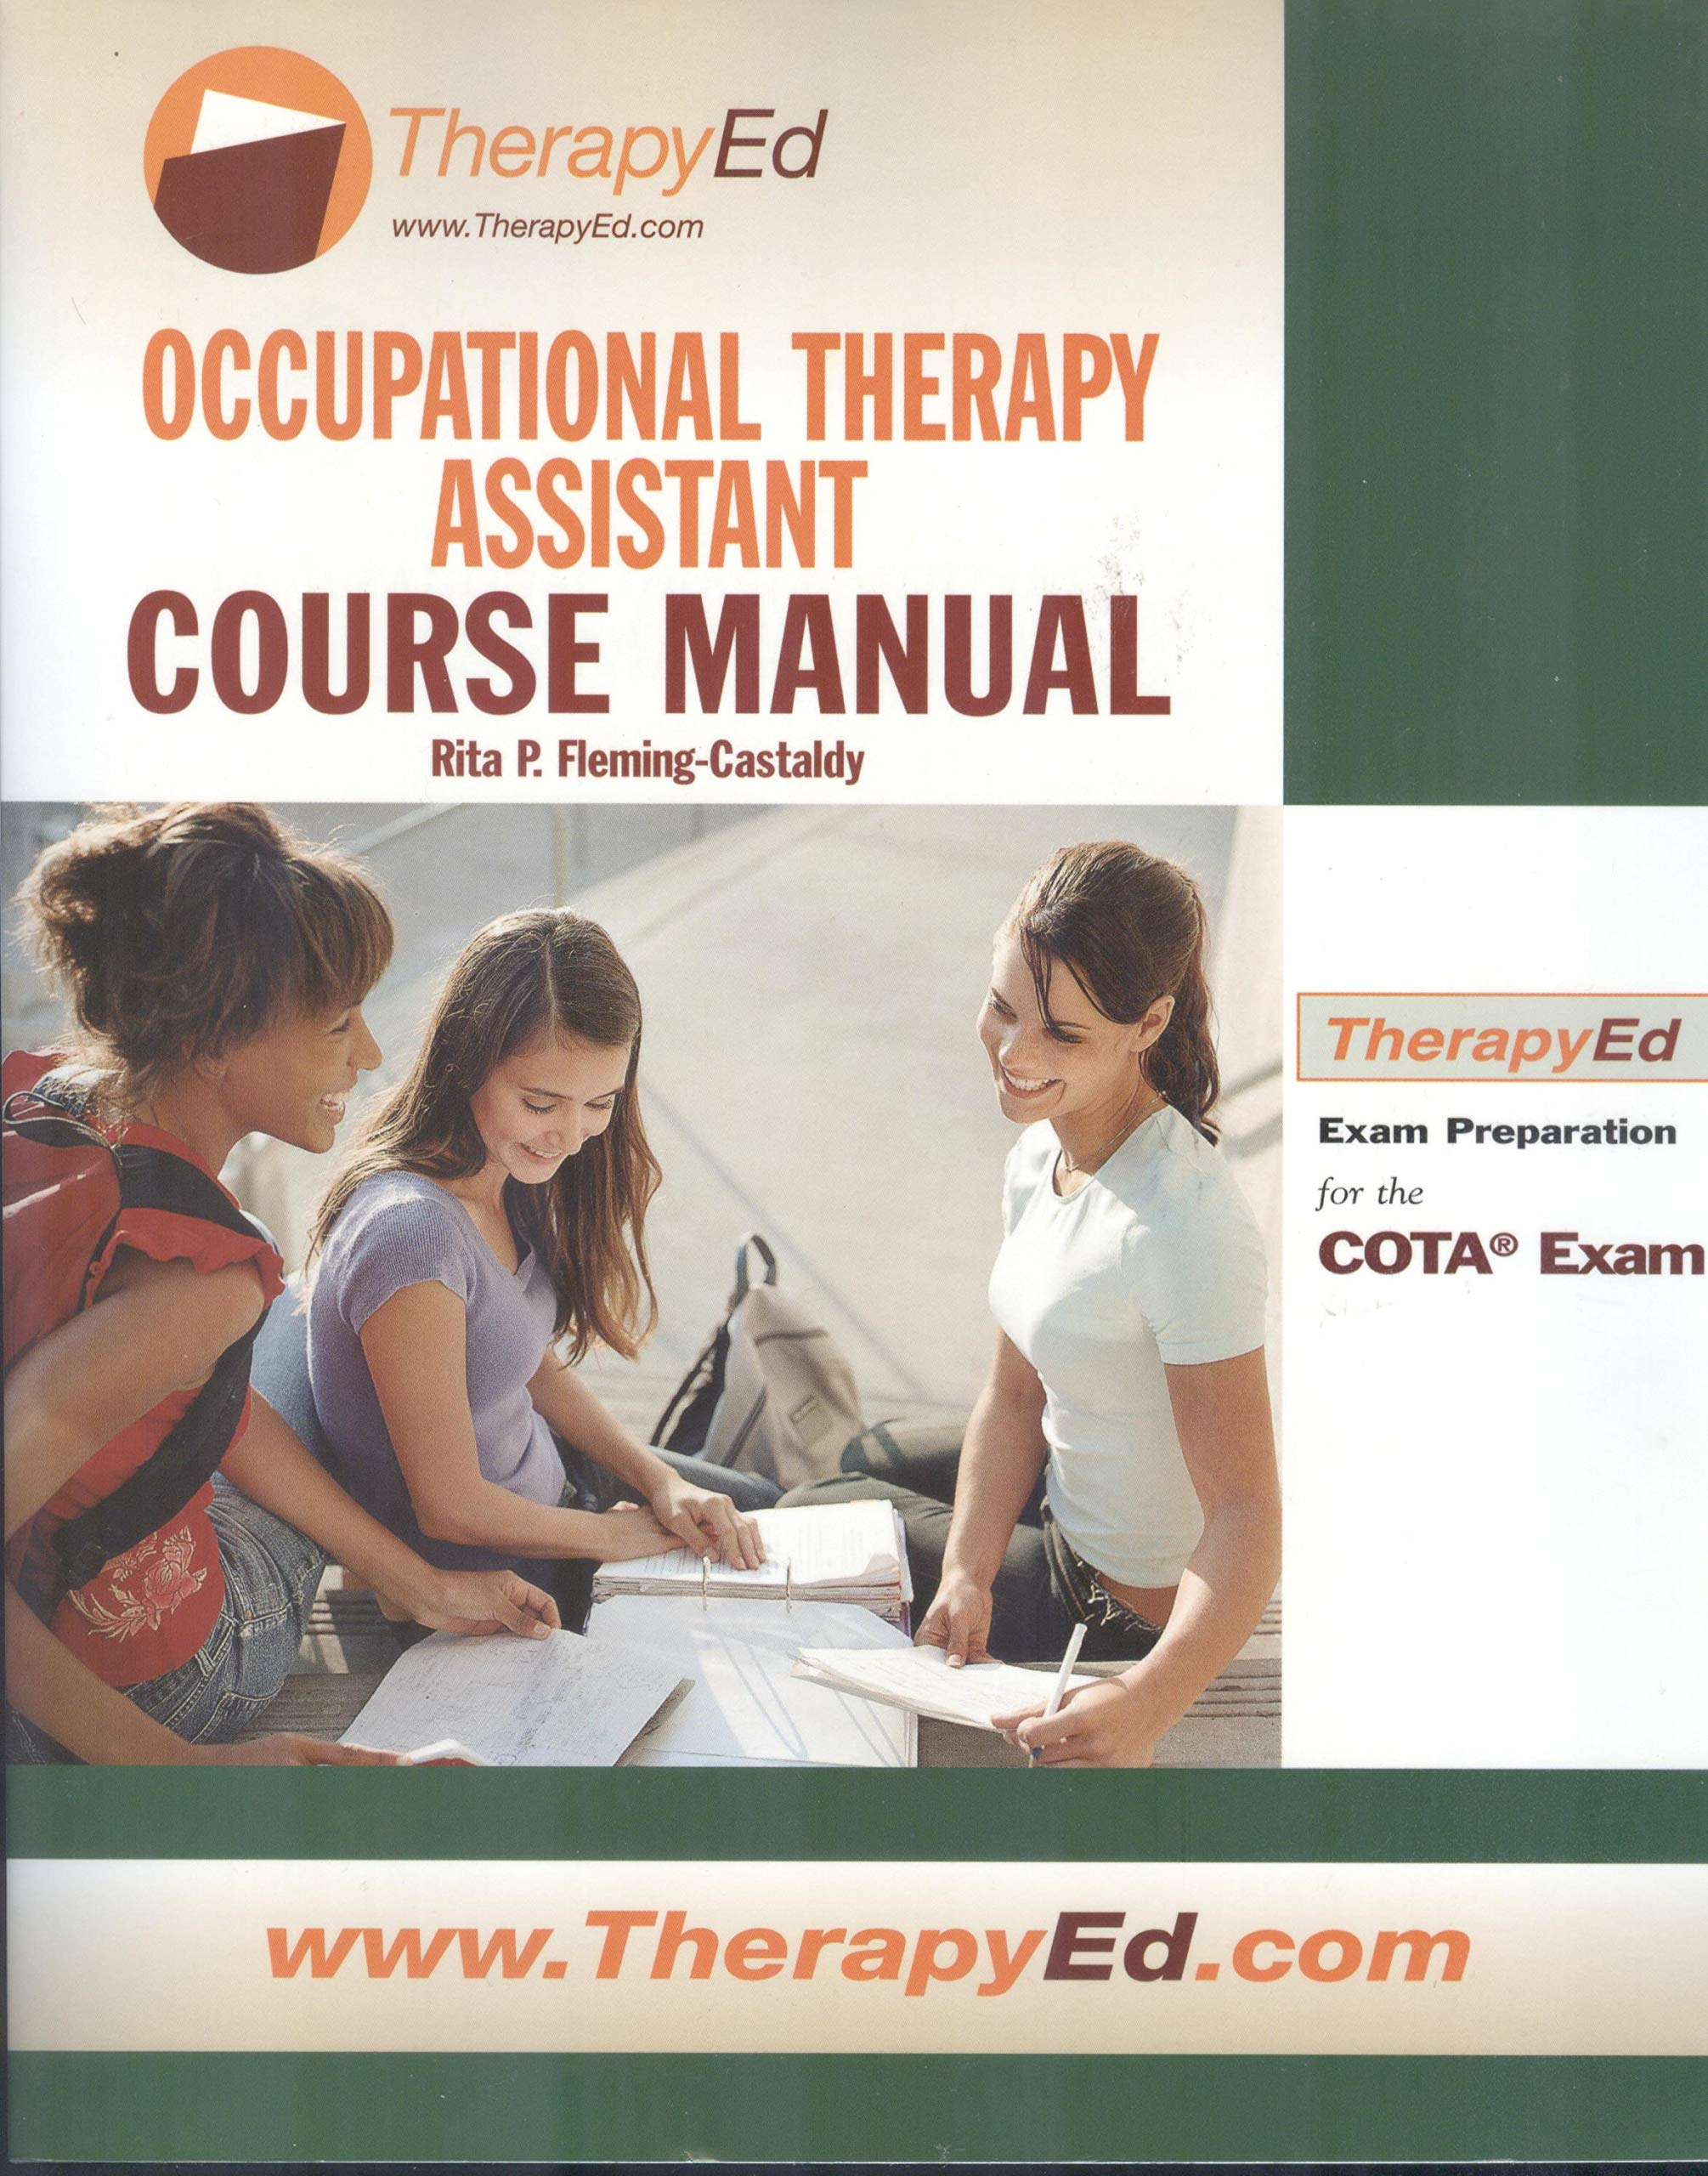 Occupational Therapy Assistant Course Manual Rita P Fleming